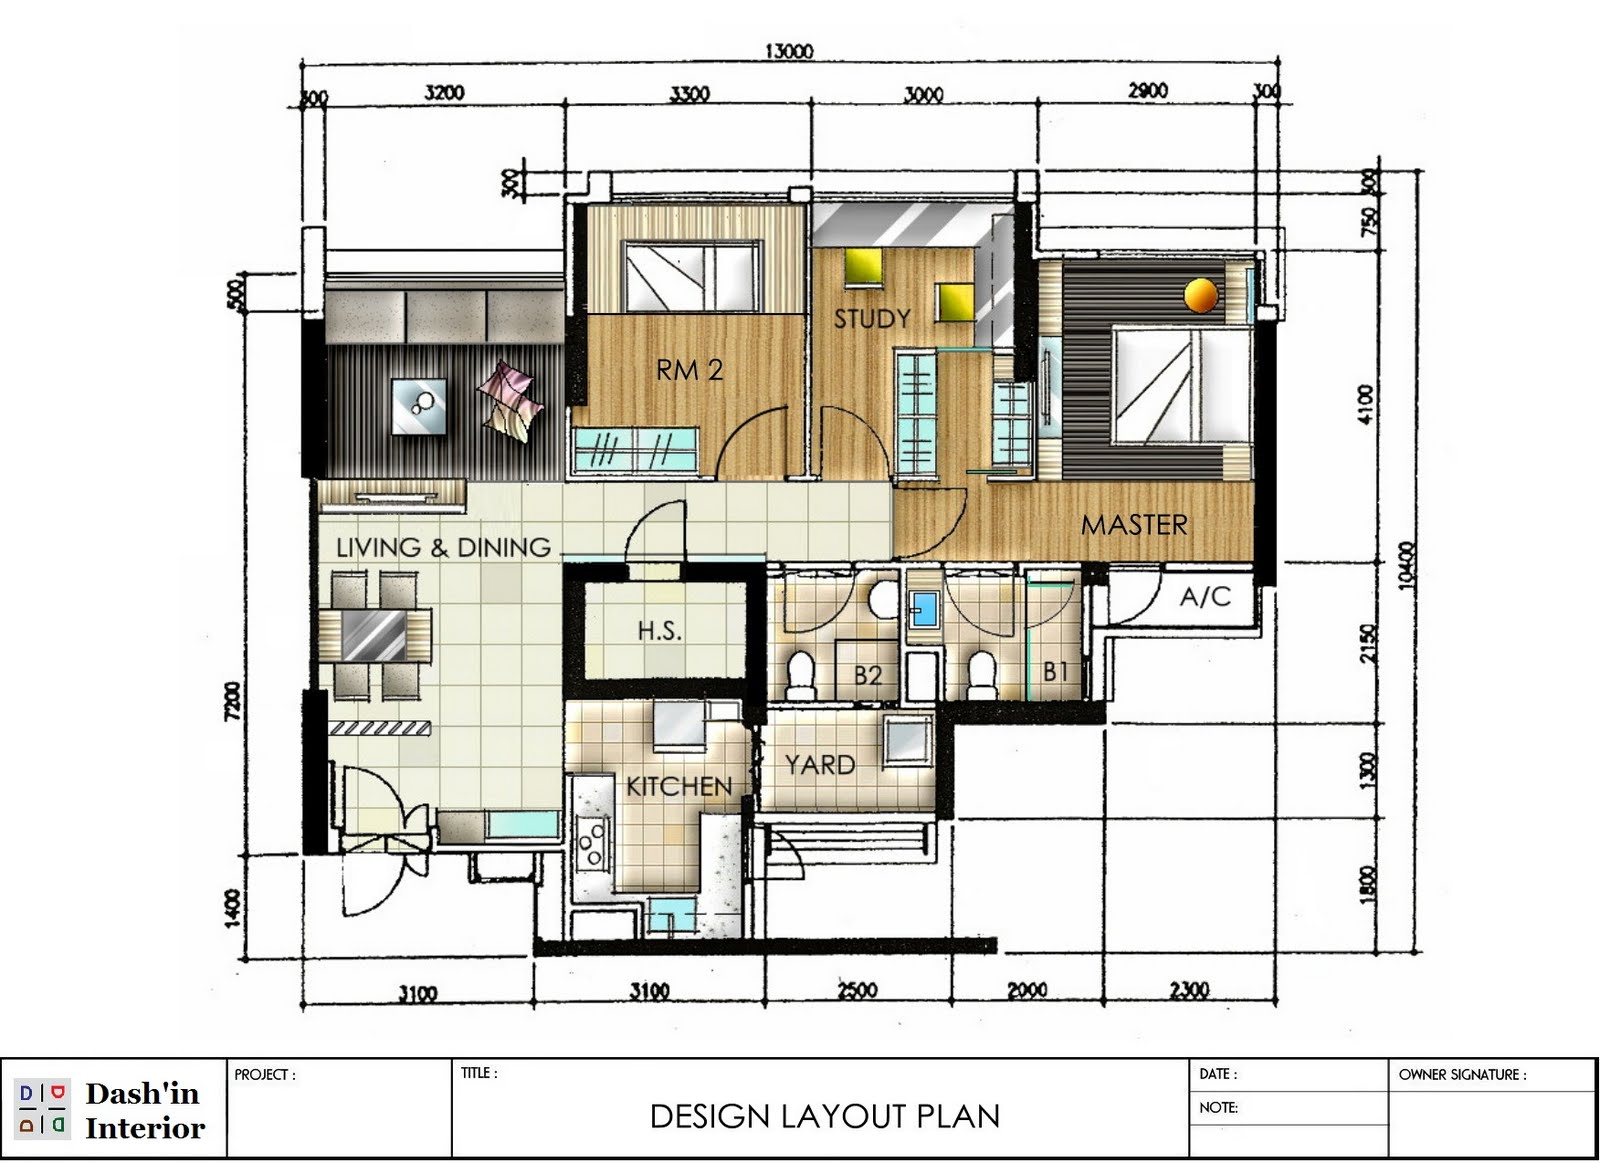 Interior Floor Design Dash 39in Interior Hand Drawn Designs Floor Plan Layout